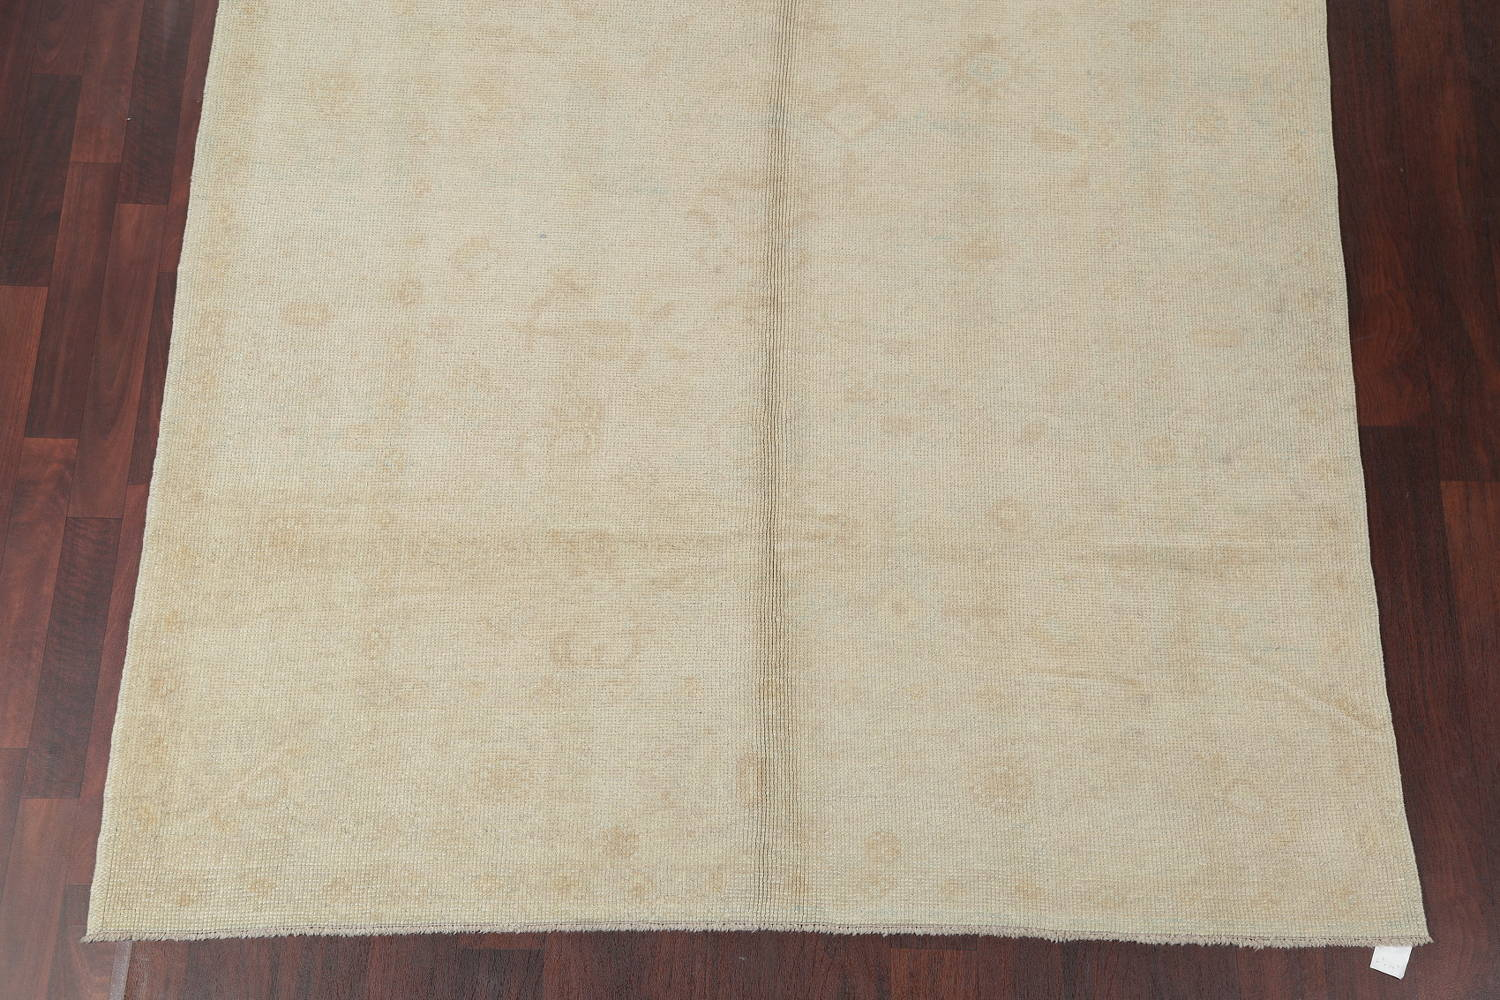 Vegetable Dye Muted Gold Oushak Turkish Hand-Knotted Runner Rug 6x15 image 5